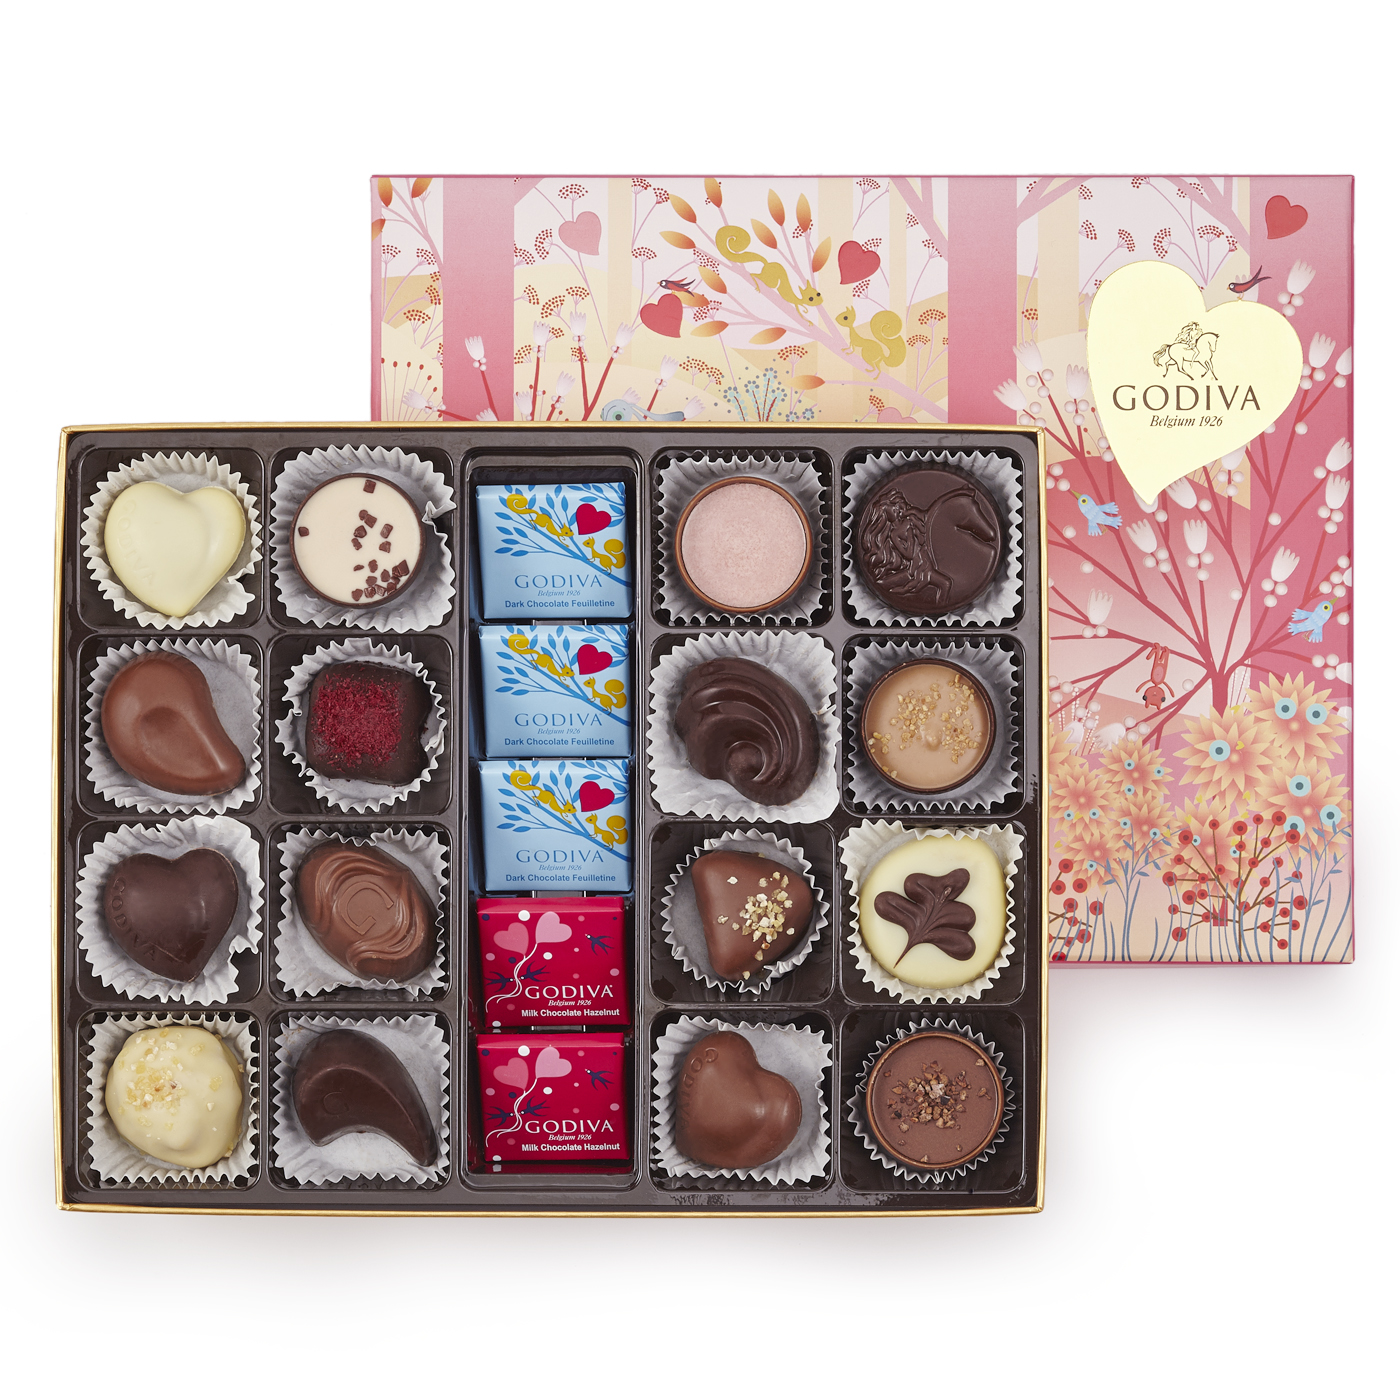 Godiva, Mother's Day gift box with 21 chocolates and lid design featuring original artwork by French artist Charlotte Gastaut, £30, godivachocolates.co.uk